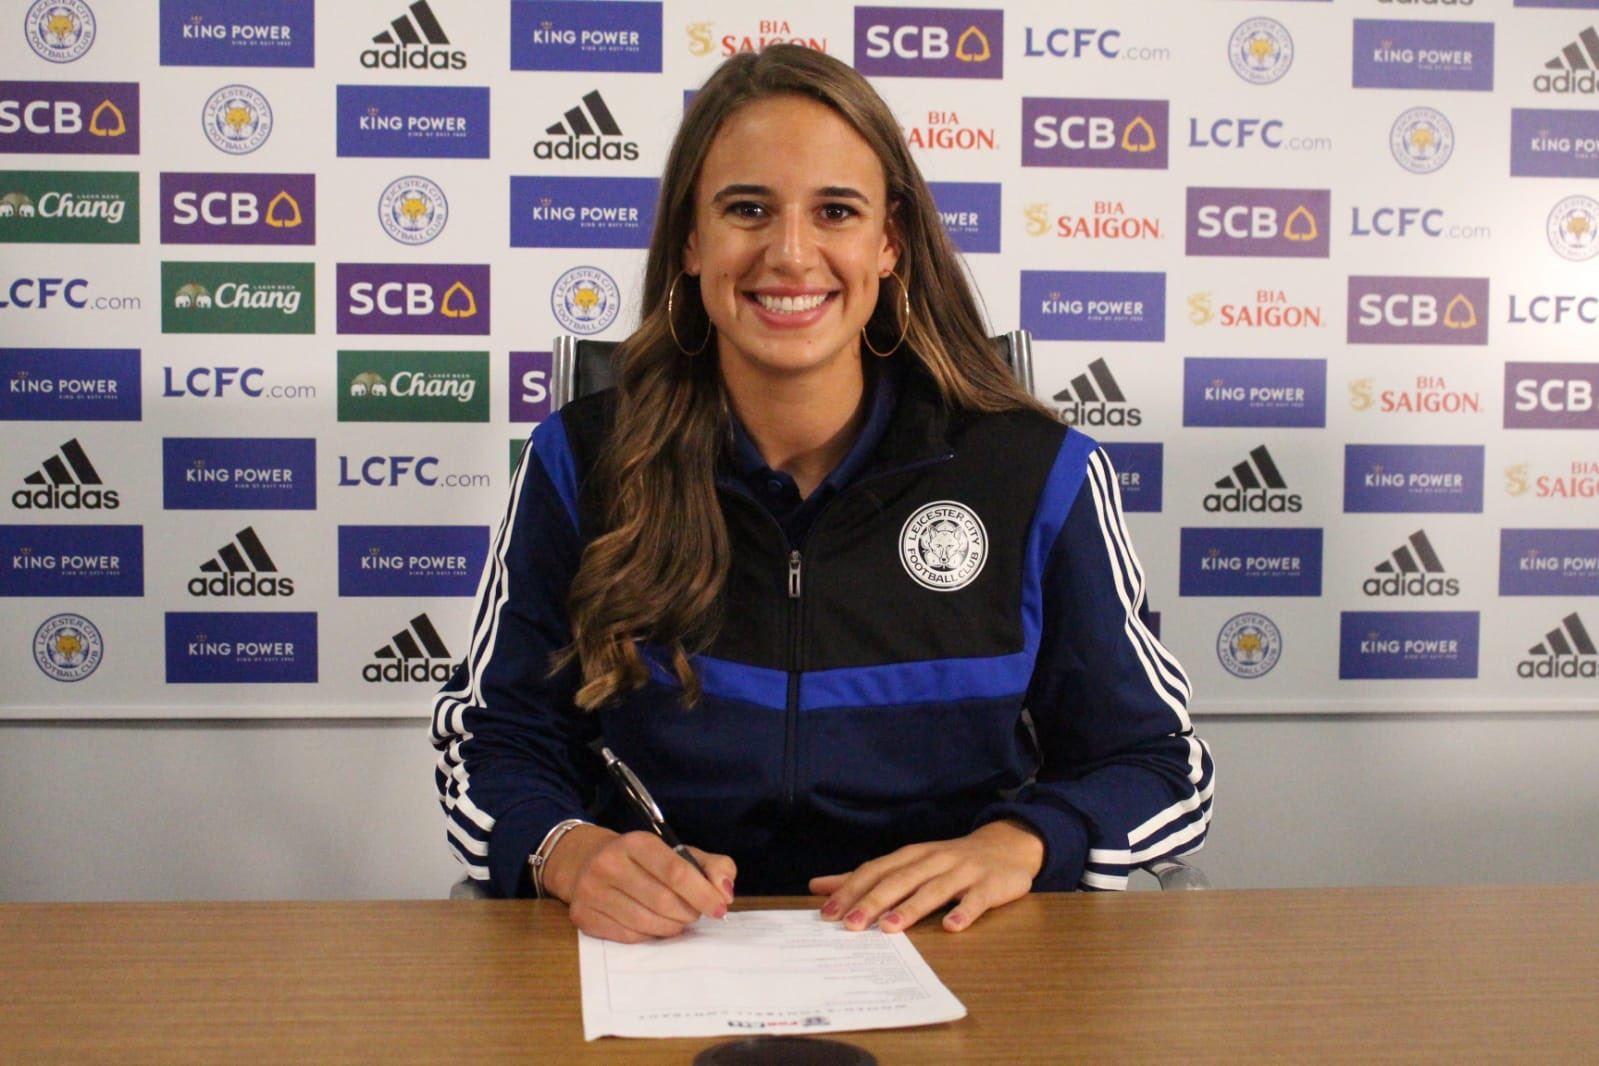 Leicester City's new signing, Ashleigh Plumptre